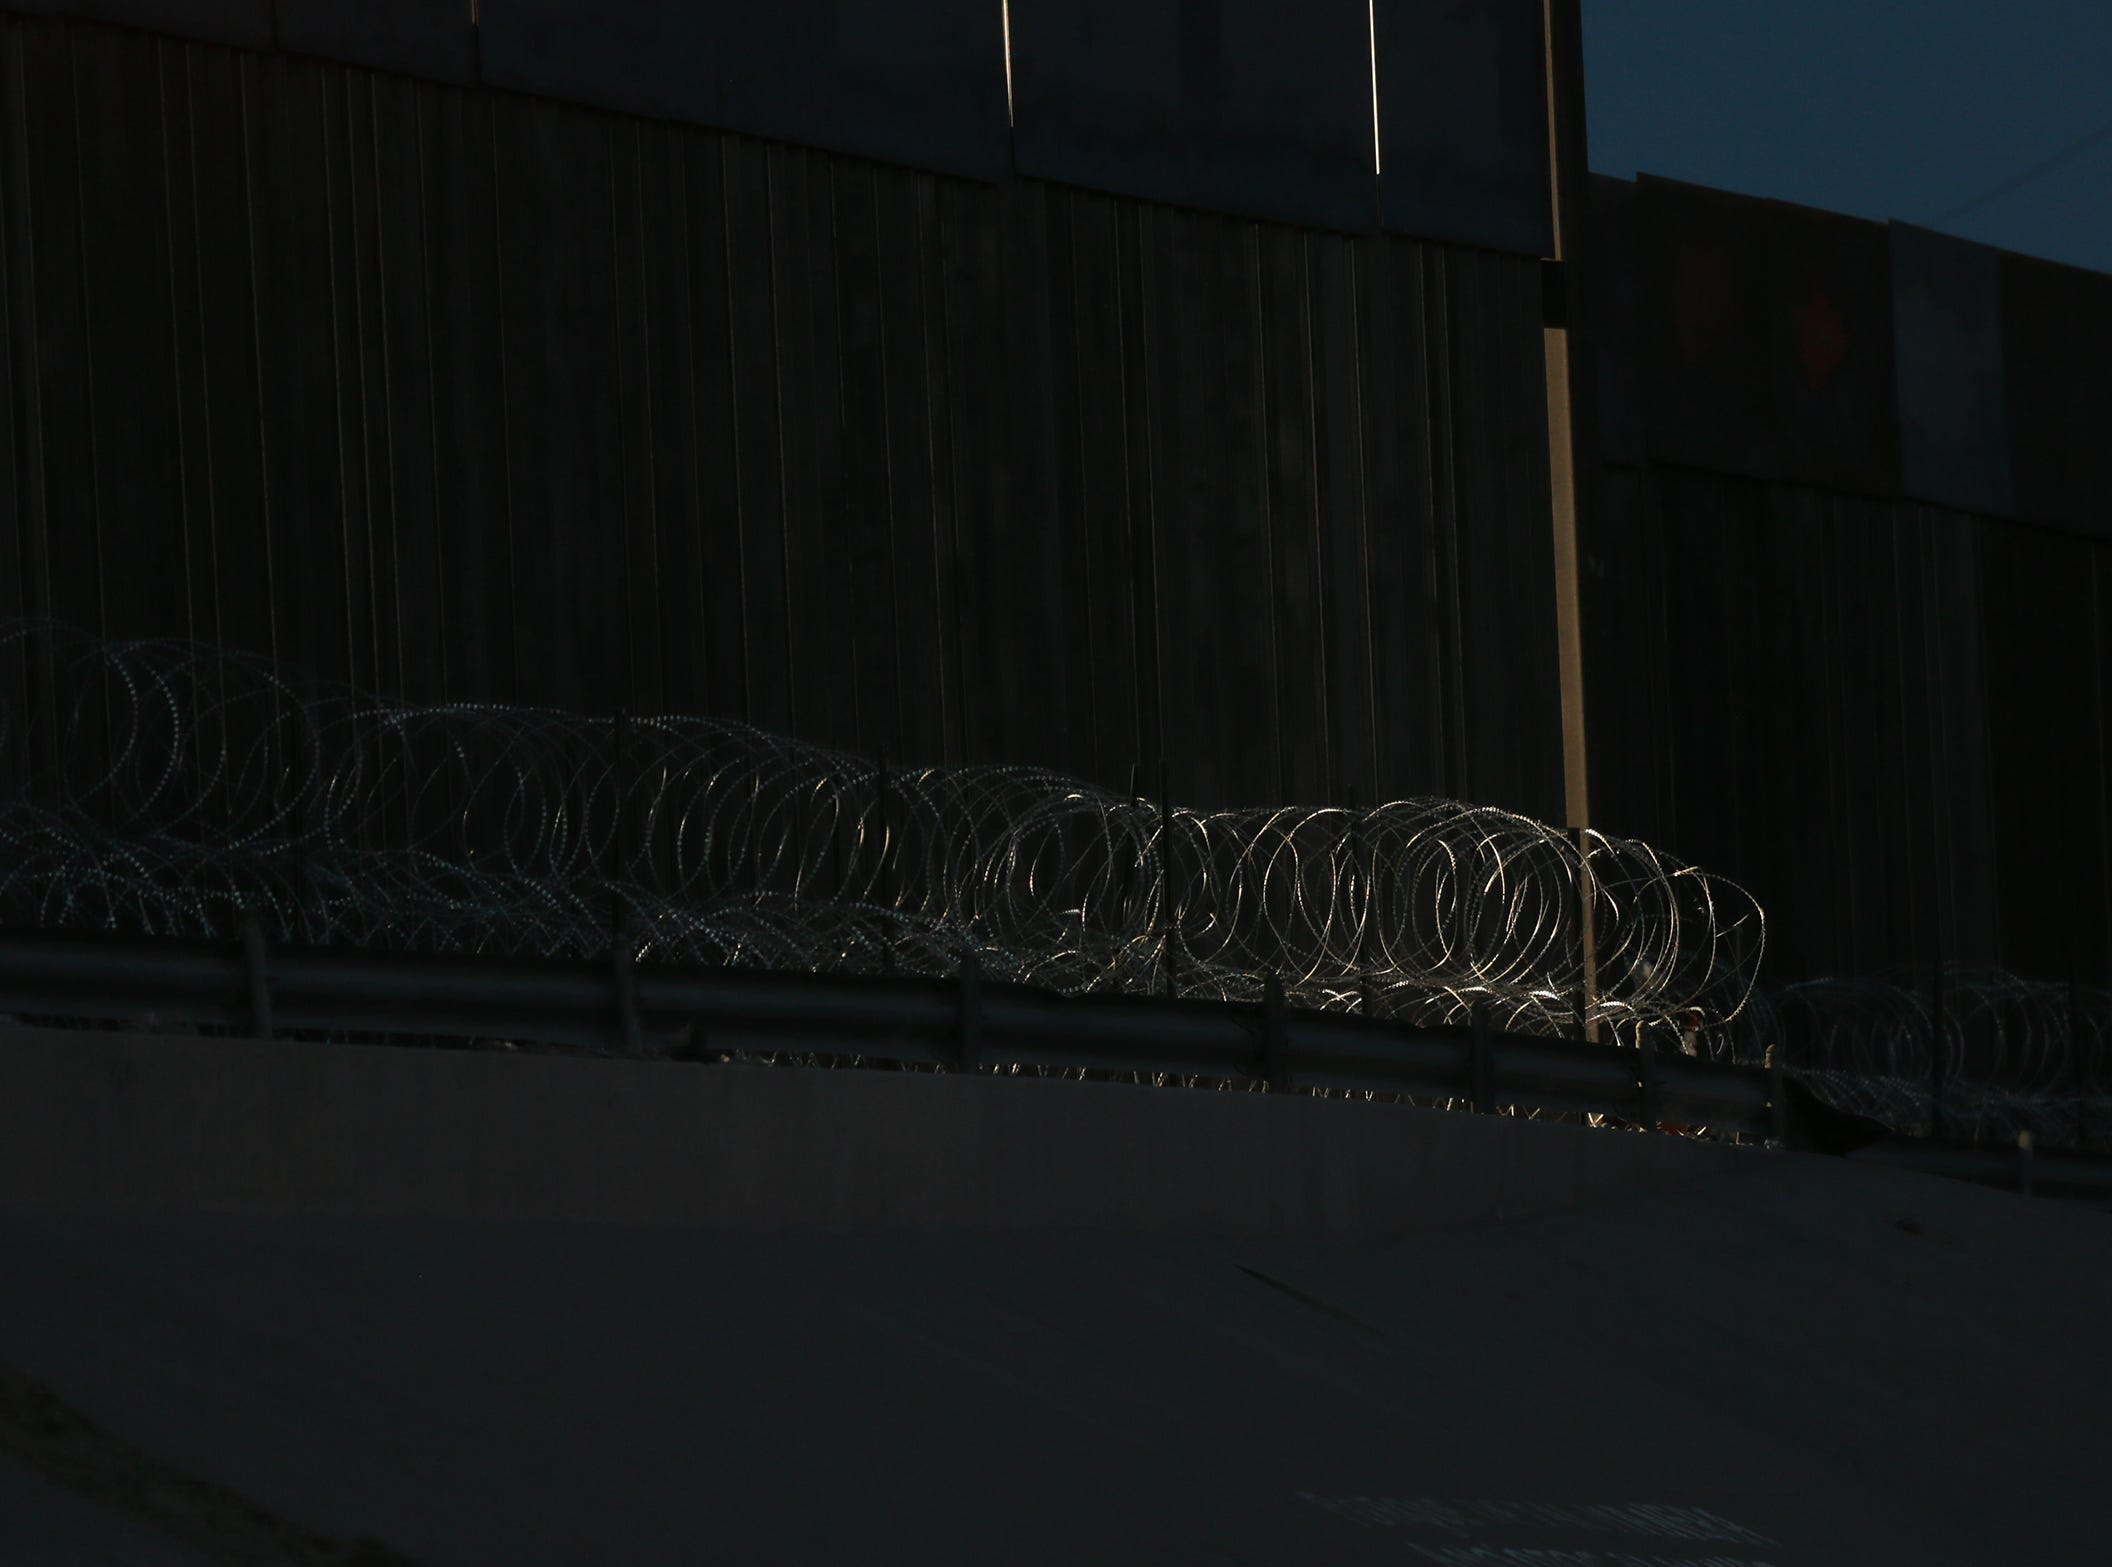 Razor wire has been added to the bollard fencing near downtown El Paso.